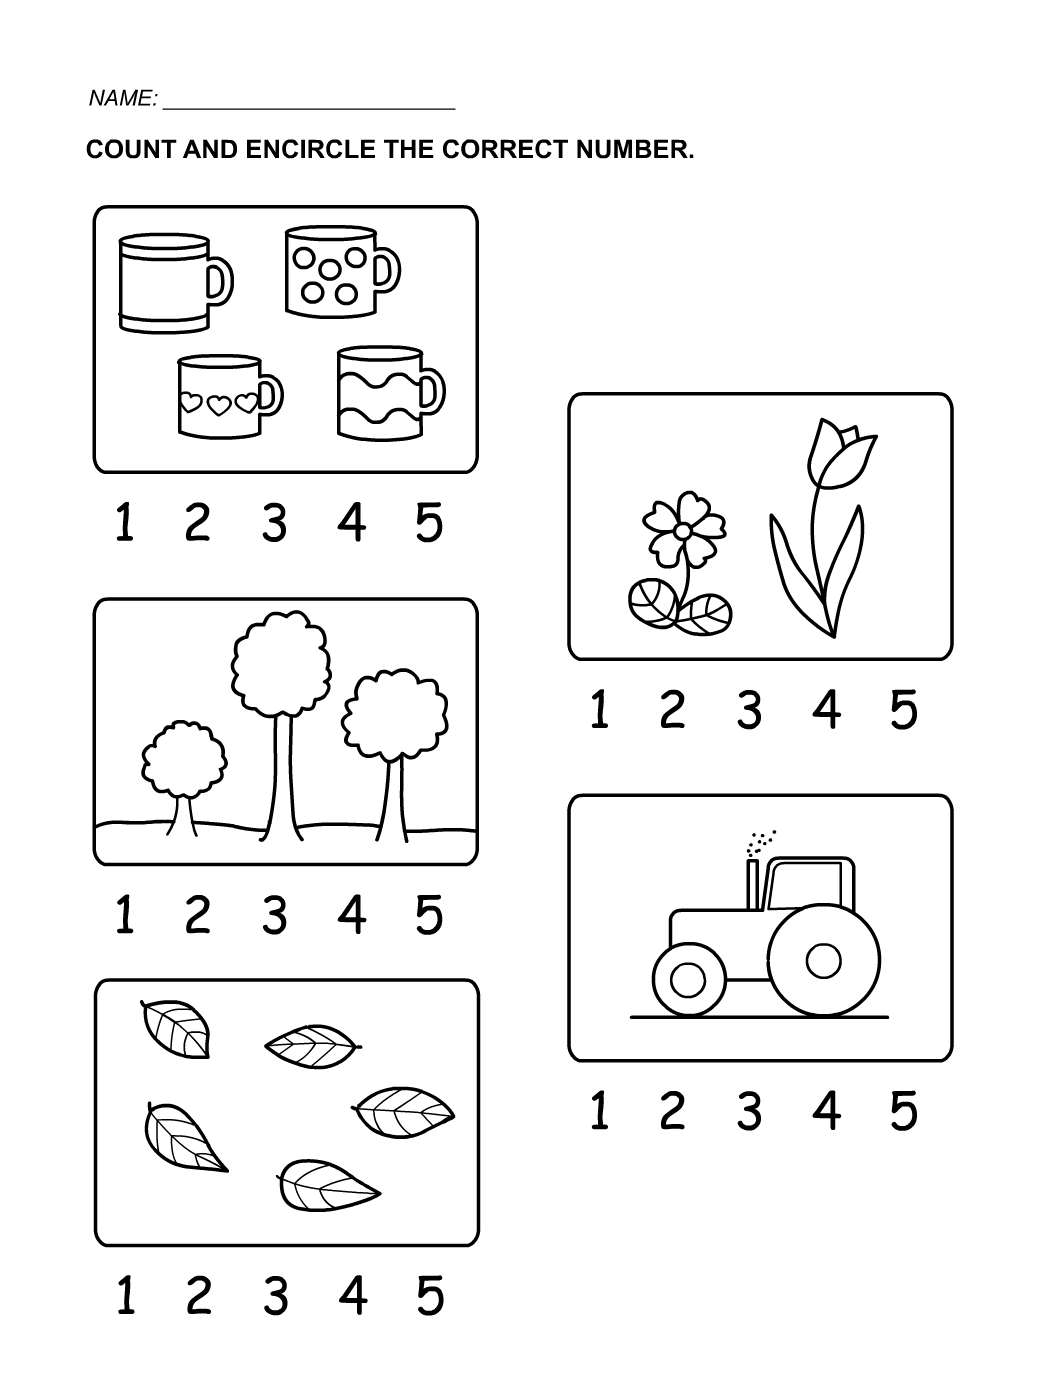 Workbooks kids counting worksheets : Tracing Numbers 1-5 for Kids | Activity Shelter